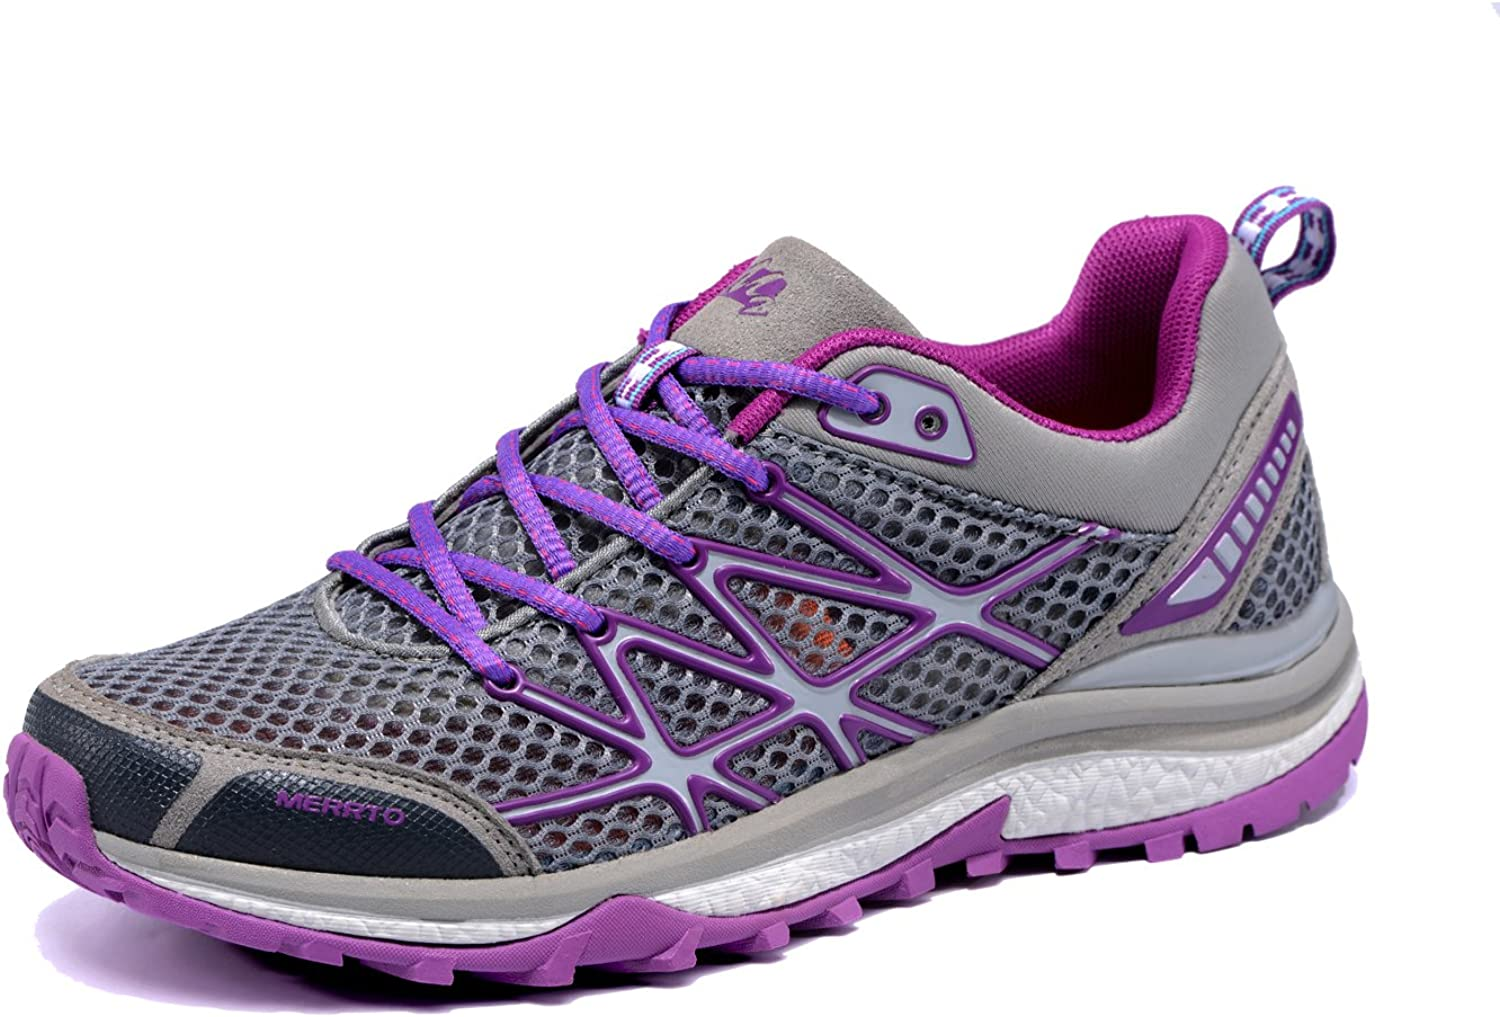 Qianling Collection Women's Outdoor Runners Textile Trail Running shoes